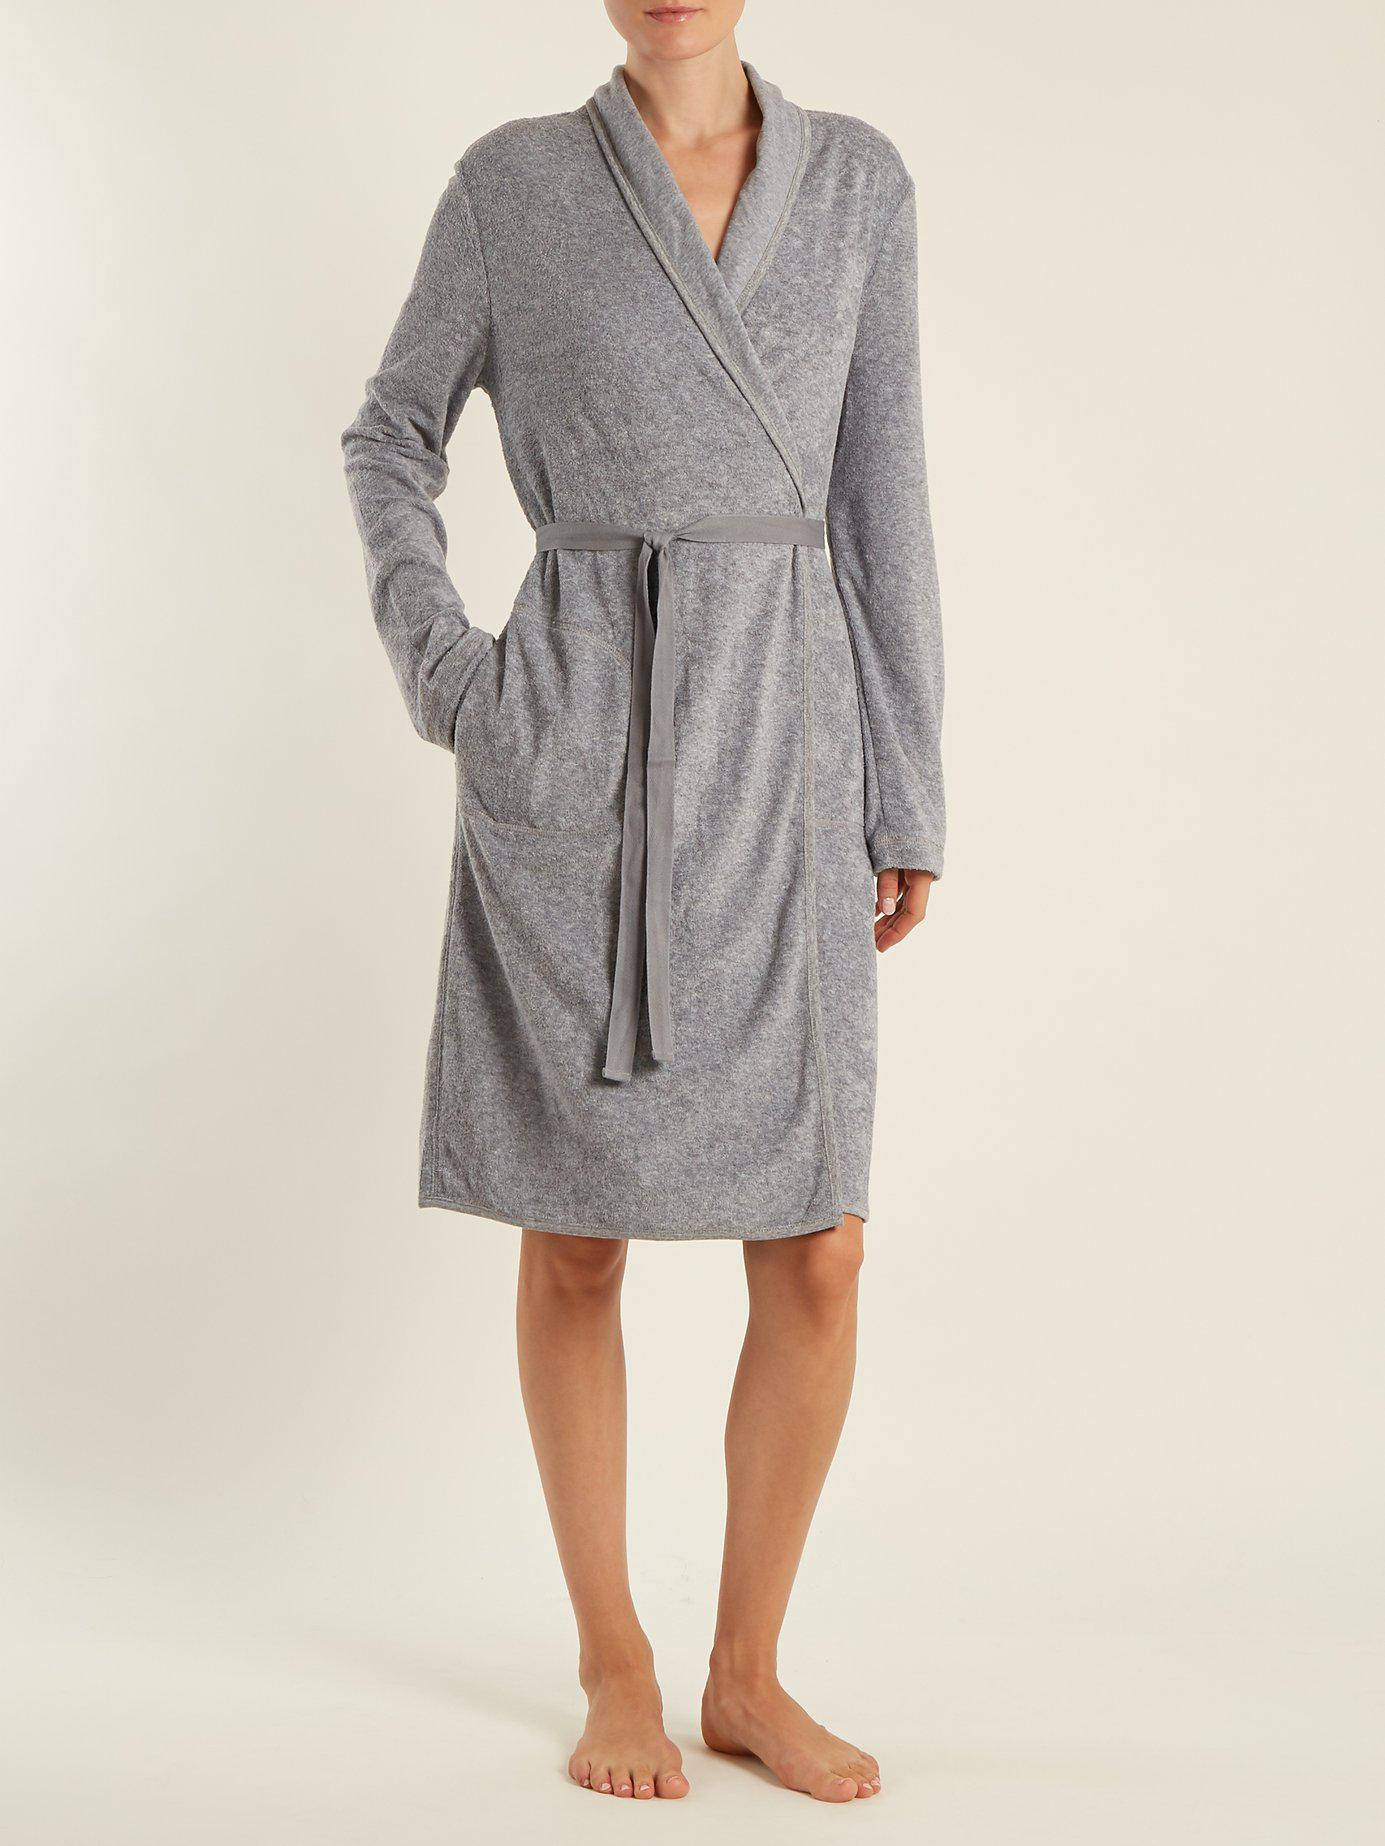 Lyst - Skin French Terry-towelling Robe in Gray 30b77912f